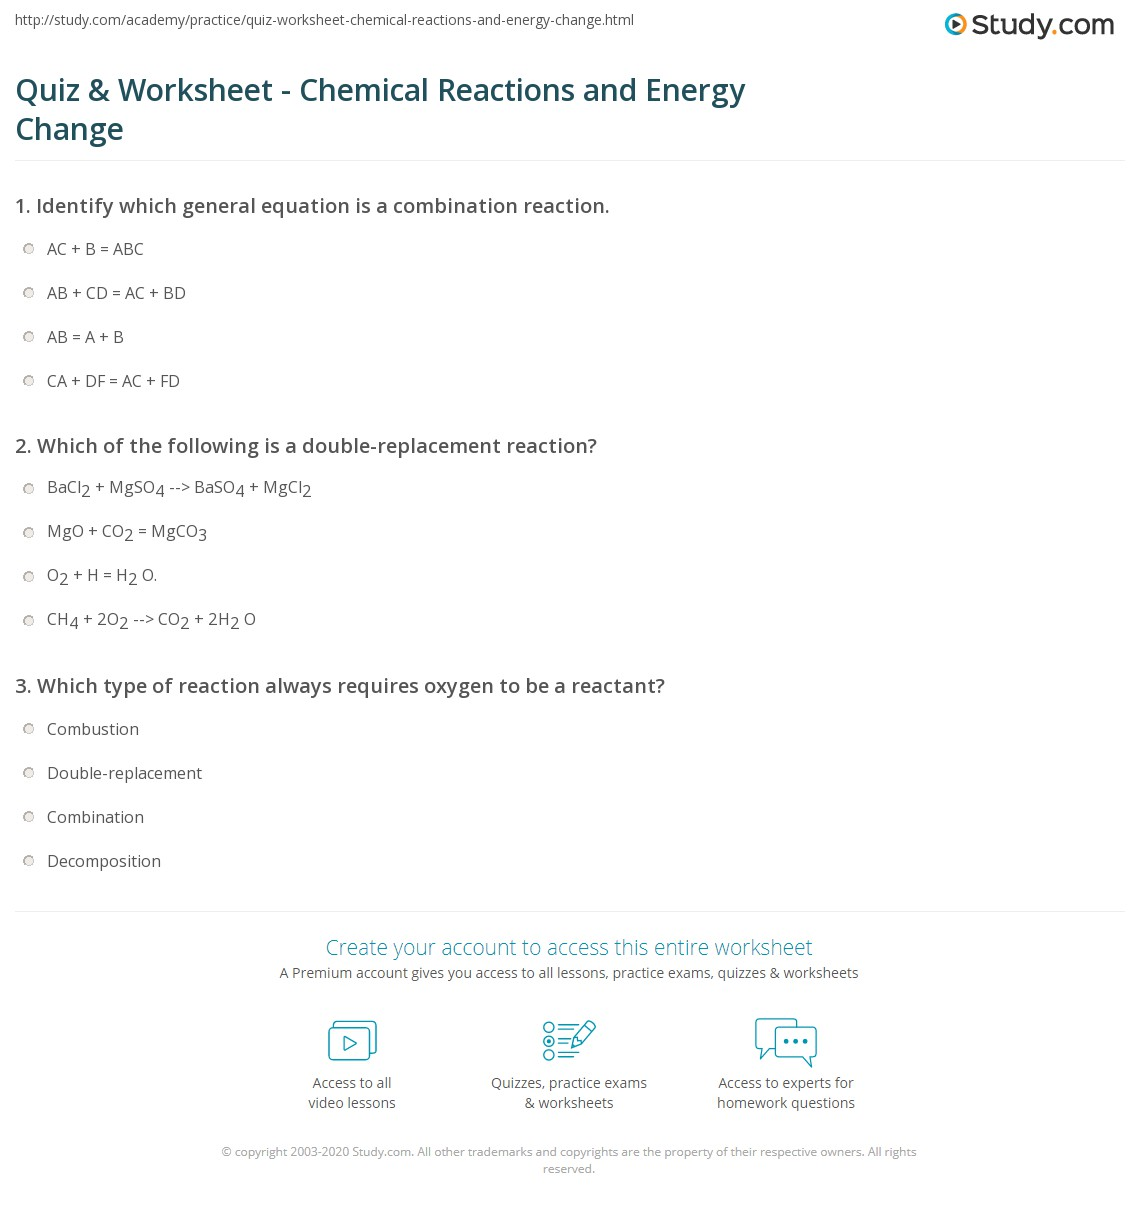 Quiz Worksheet Chemical Reactions And Energy Change